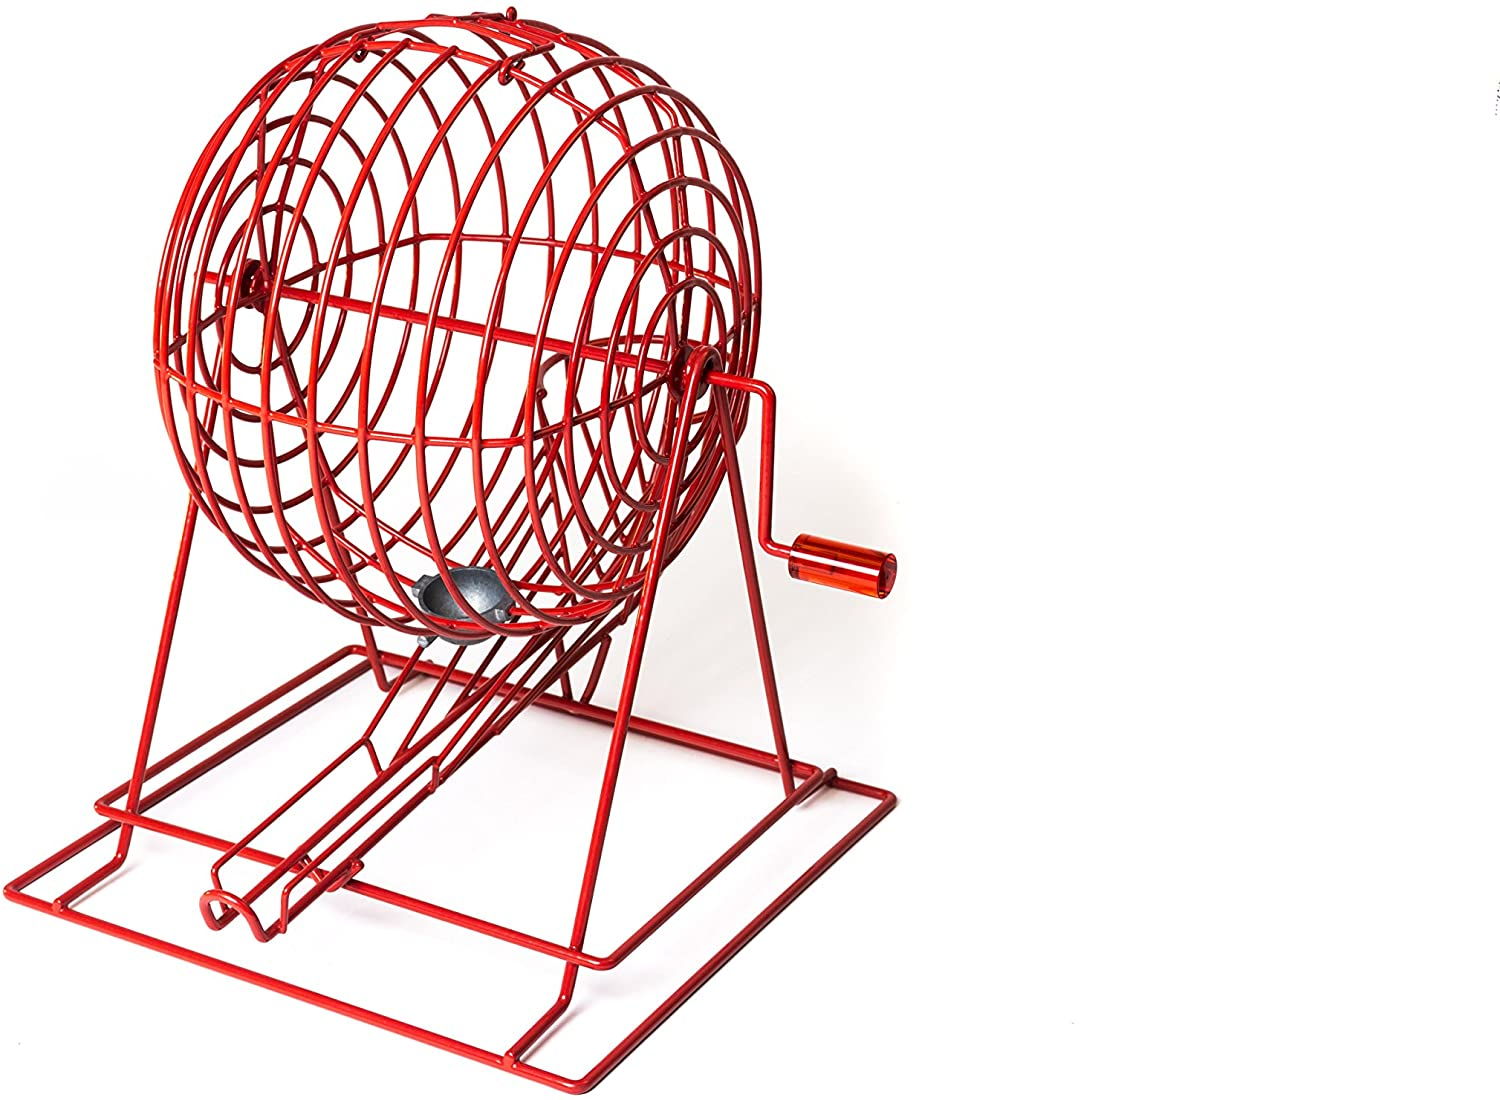 MR CHIPS Professional Bingo Cage - CAGE ONLY - Red Powder Coated - Extra Large - 19 High - Holds 75 Ping Pong Style Bingo Balls